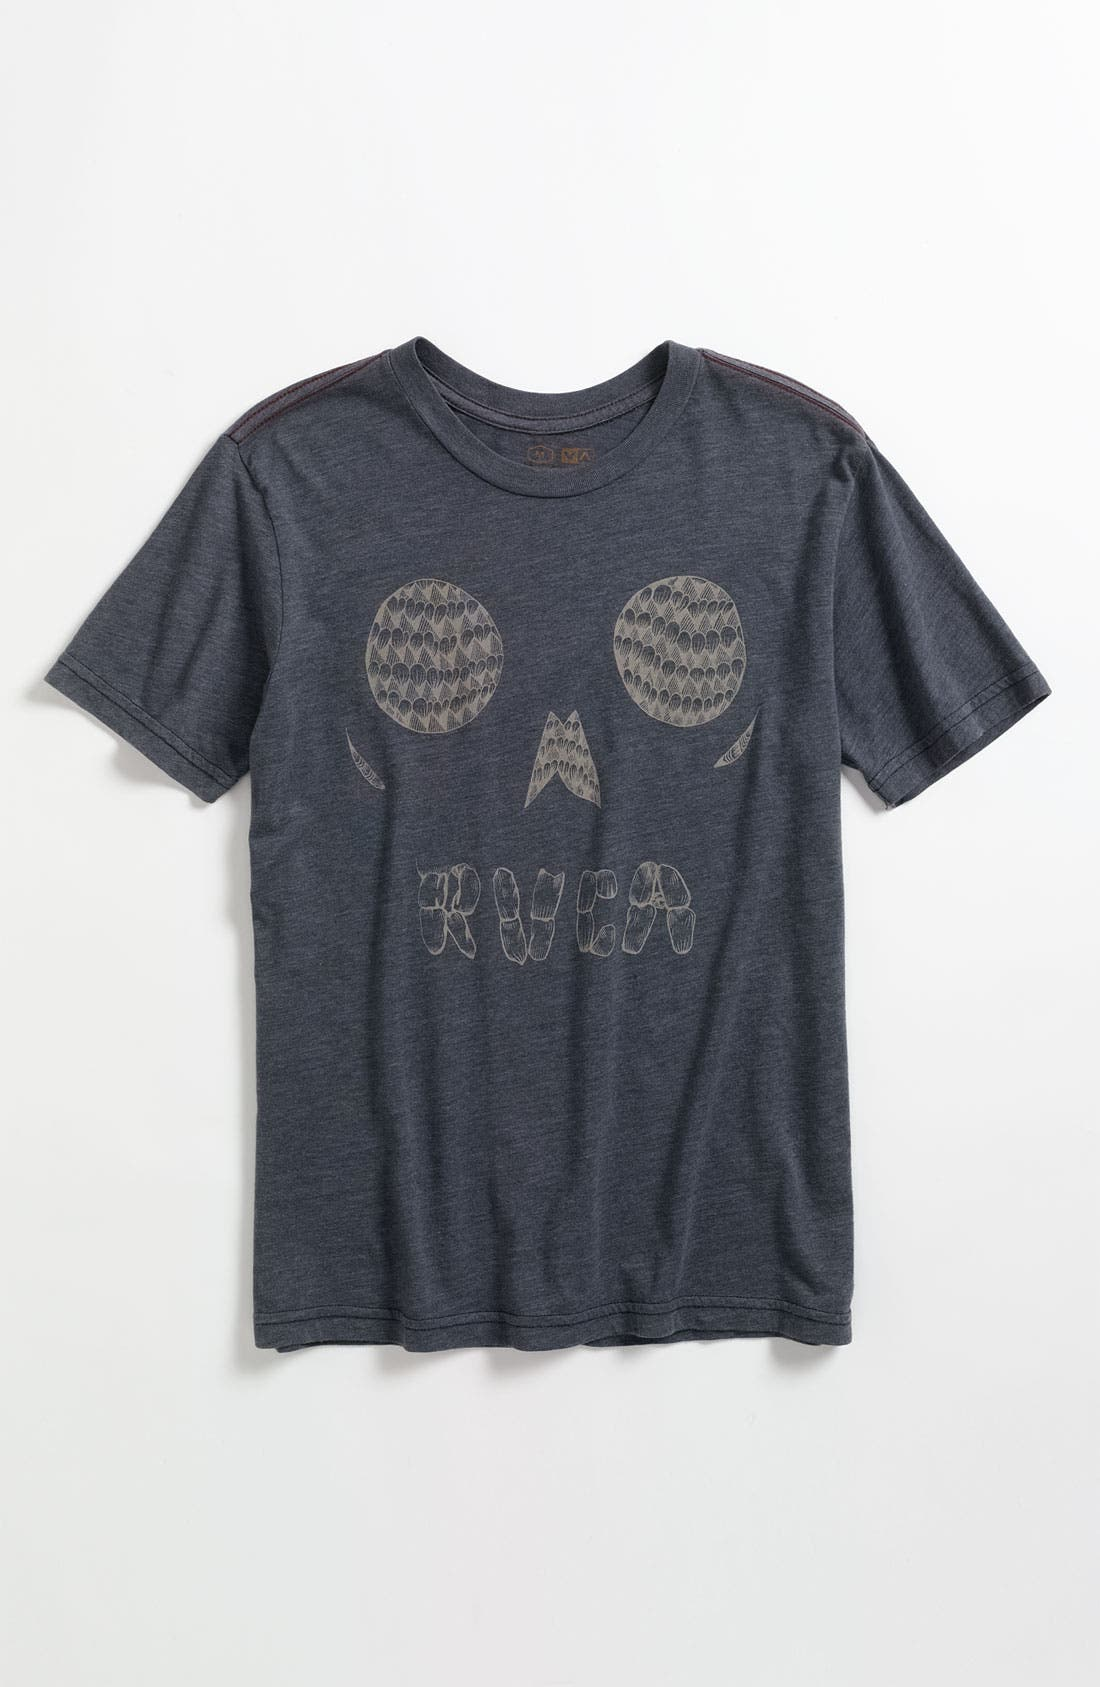 Alternate Image 1 Selected - RVCA 'Skull Face' T-Shirt (Big Boys)